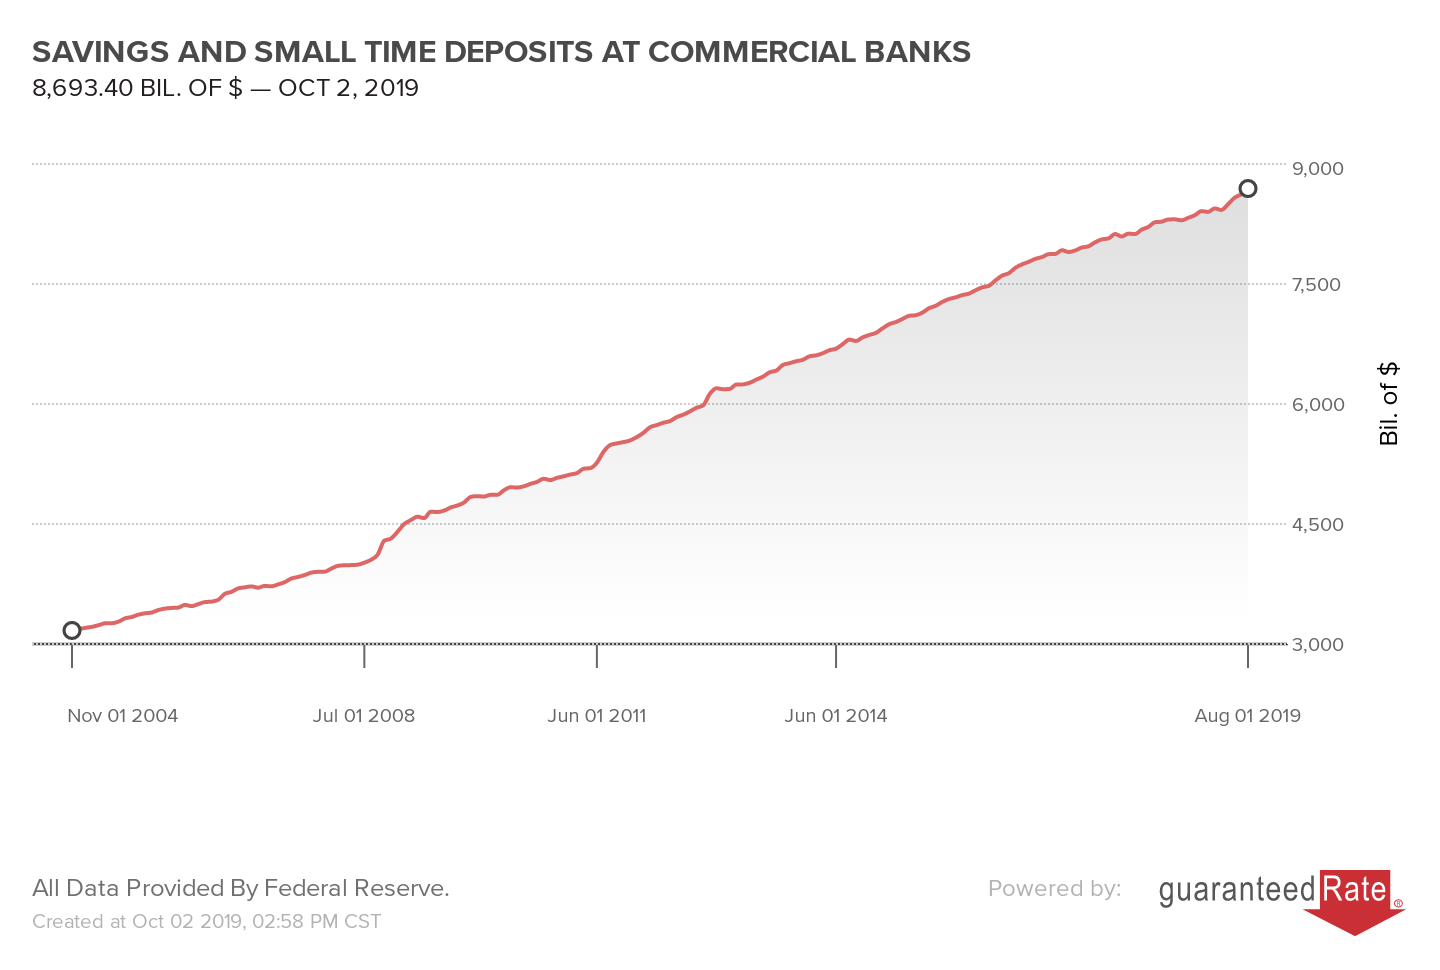 SAVINGS AND SMALL TIME DEPOSITS AT COMMERCIAL BANKS